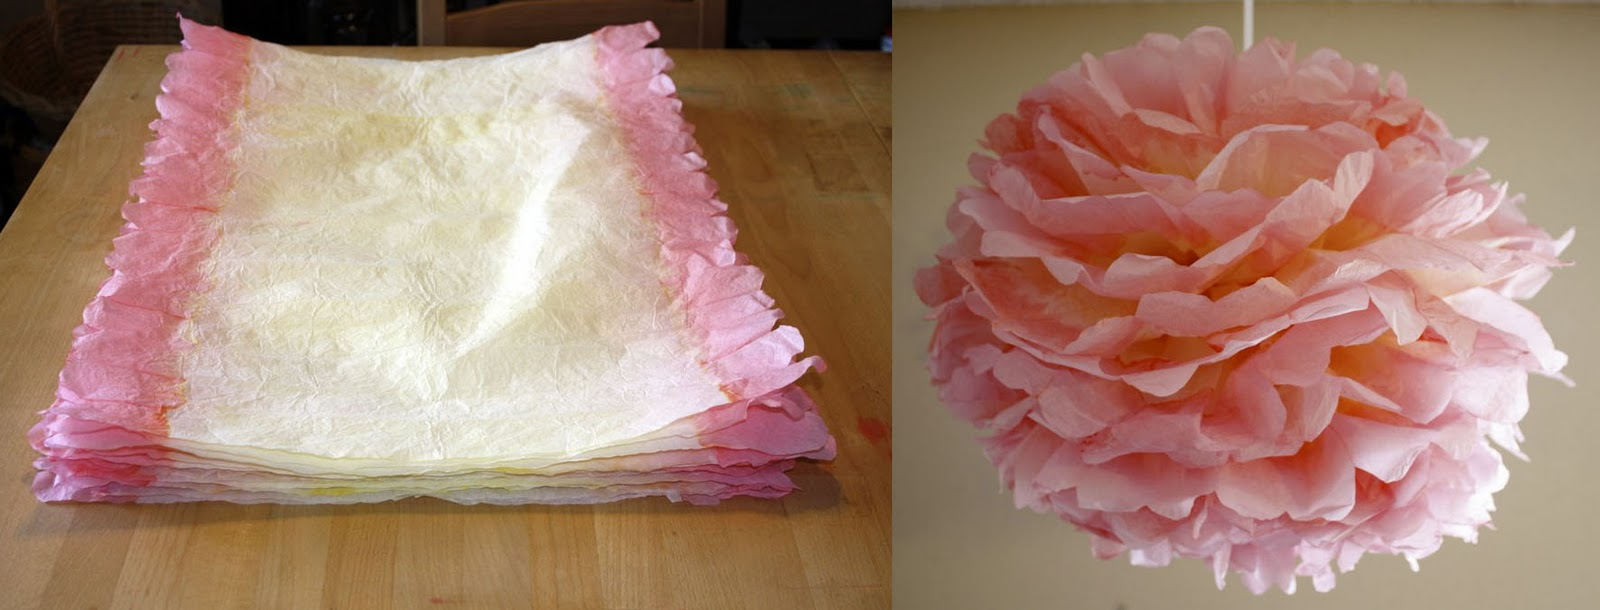 Ido It Myself Dyed Tissue Paper Pom Poms